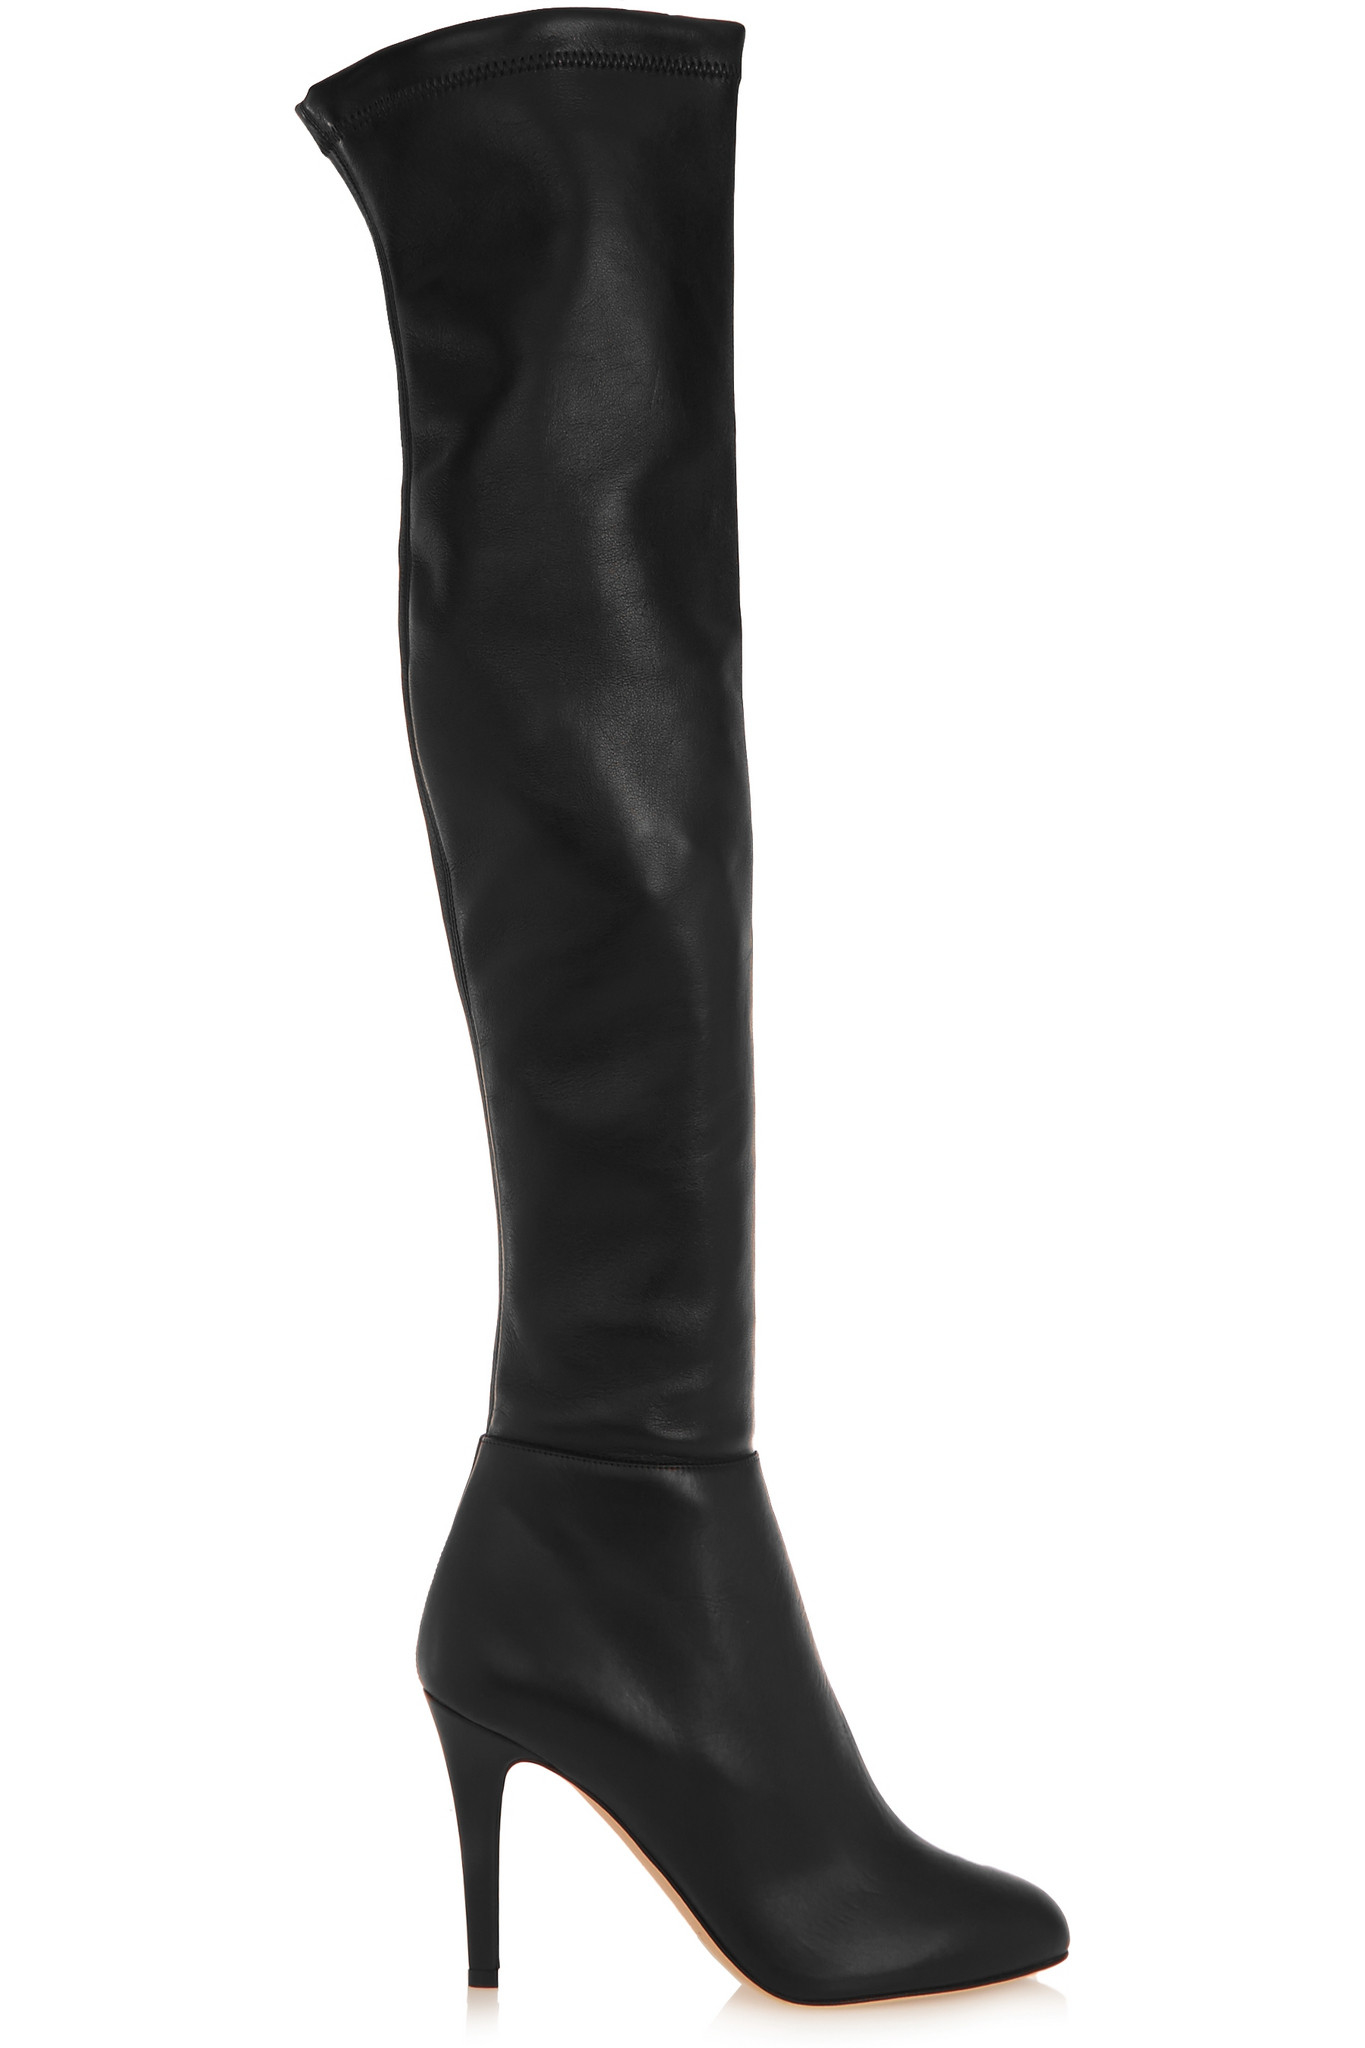 Jimmy choo Toni Stretch-leather Over-the-knee Boots in Black | Lyst